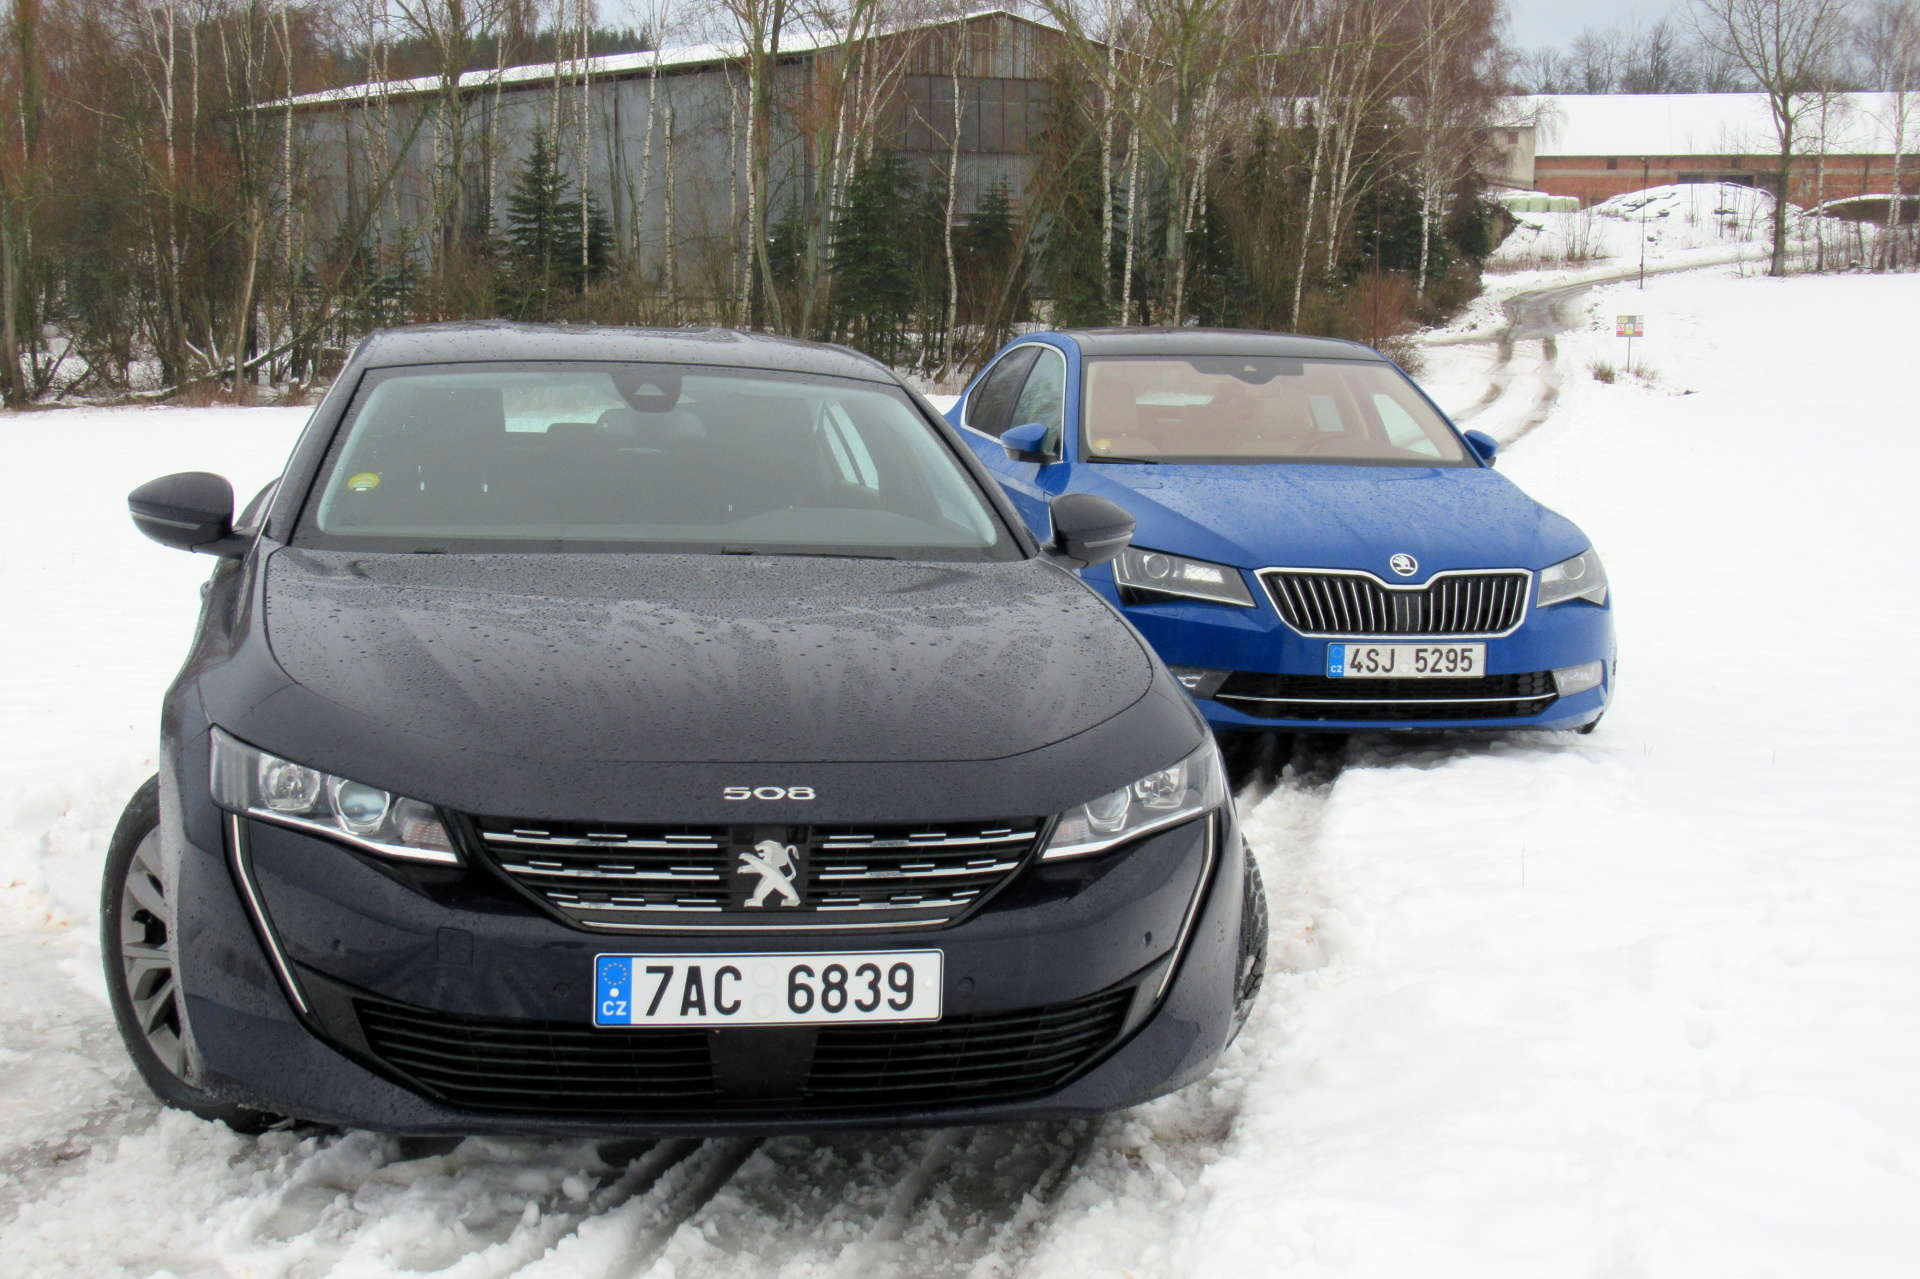 skoda-superb-tdi-vs-peugeot-508-bluehdi-srovnani